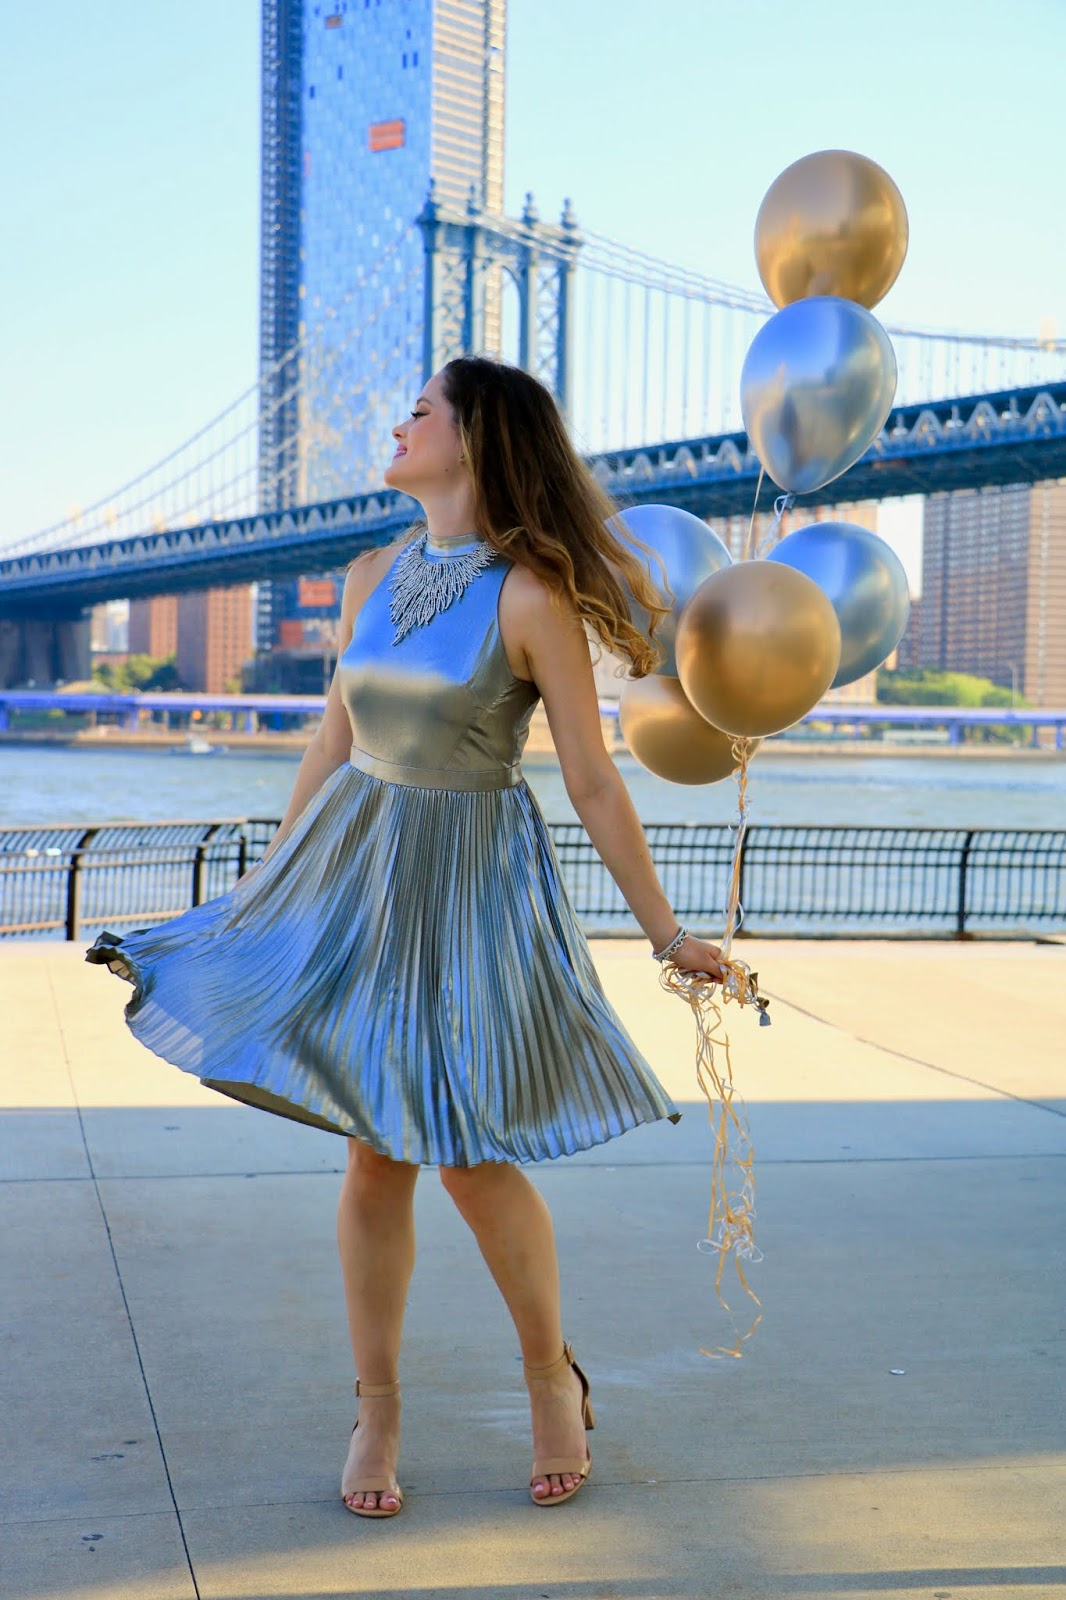 Fashion blogger Kathleen Harper doing a photo shoot with balloons in NYC